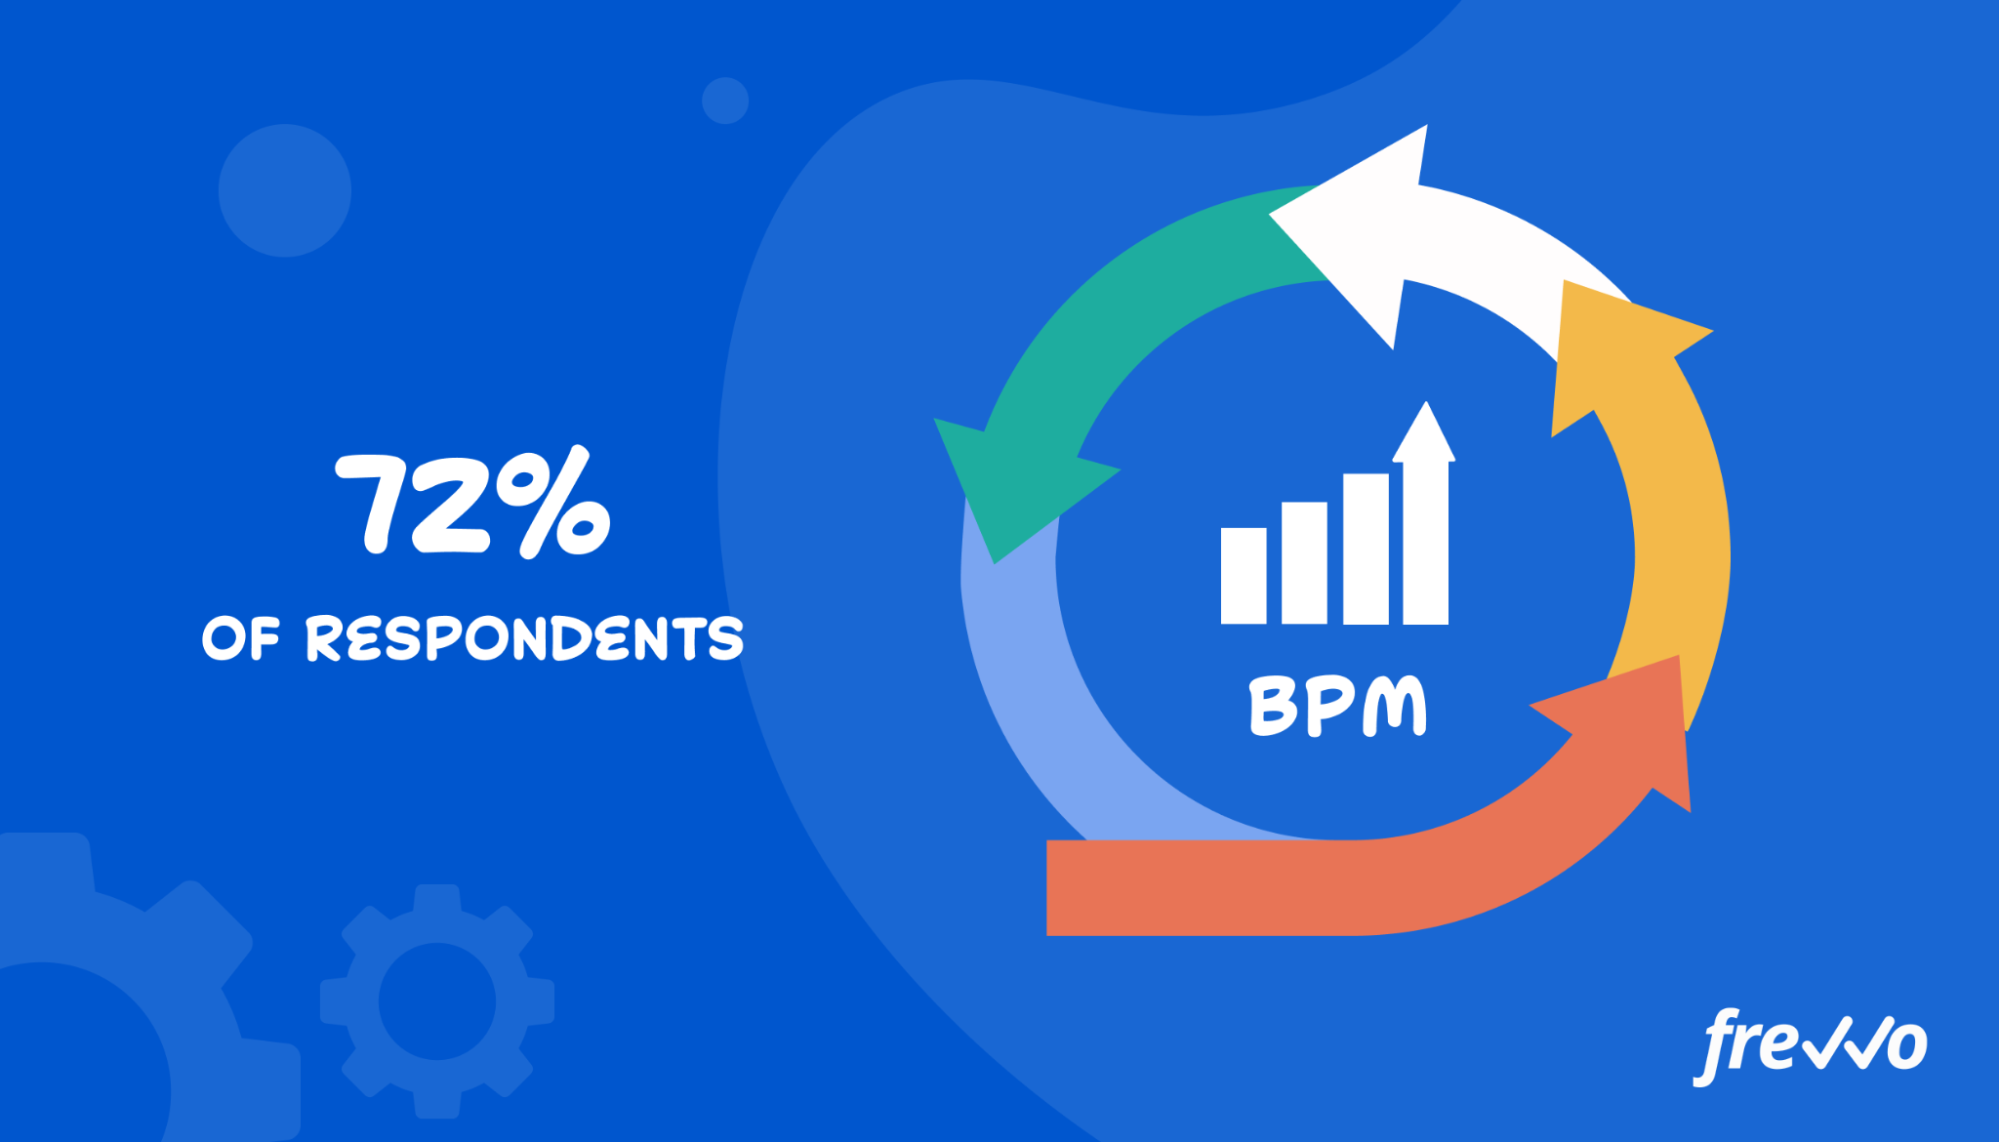 72% of respondents agree that business process management improves efficiency